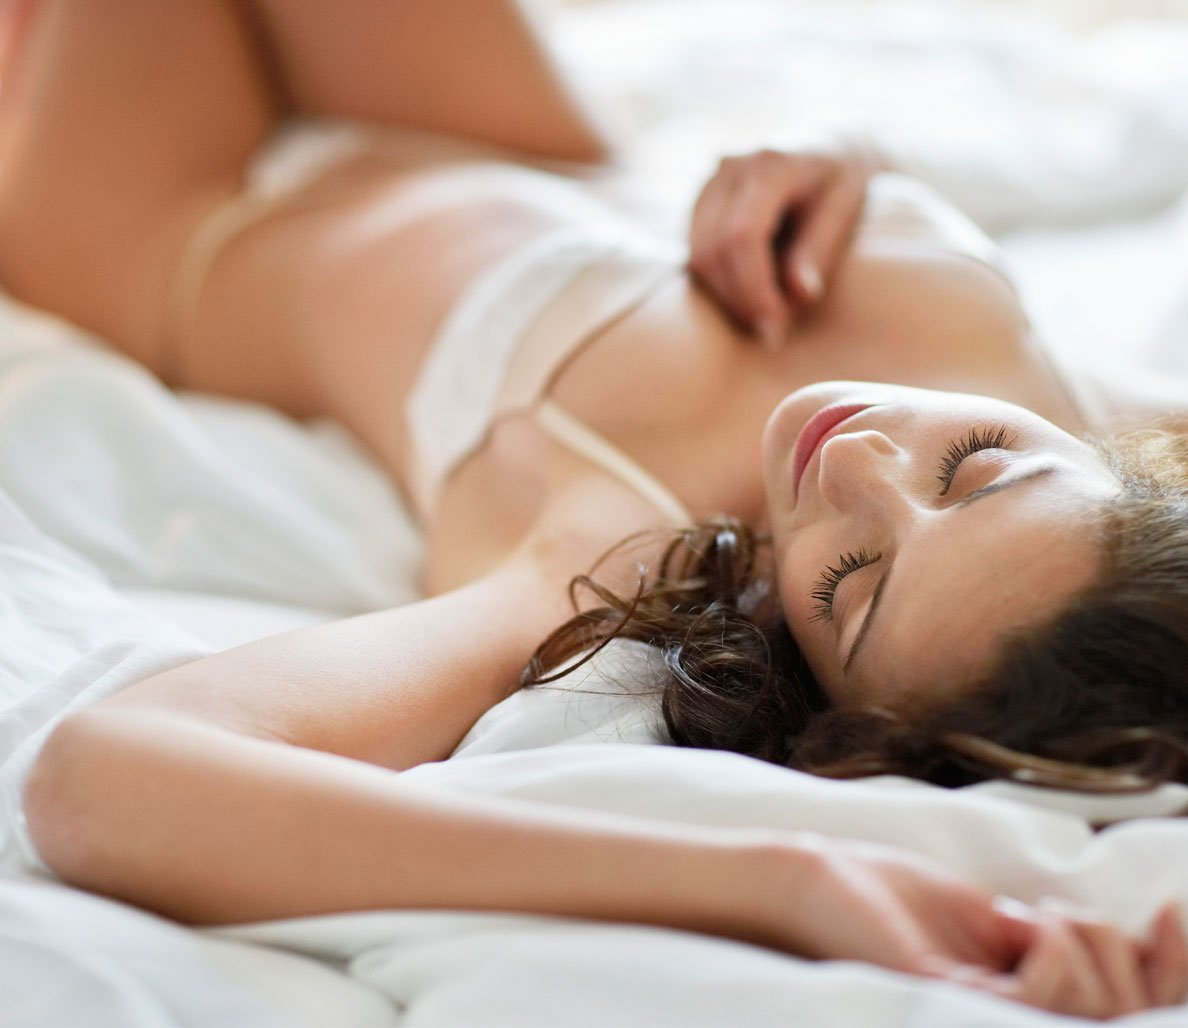 Turn On The Fire With The Help Of Sex Instructional Videos